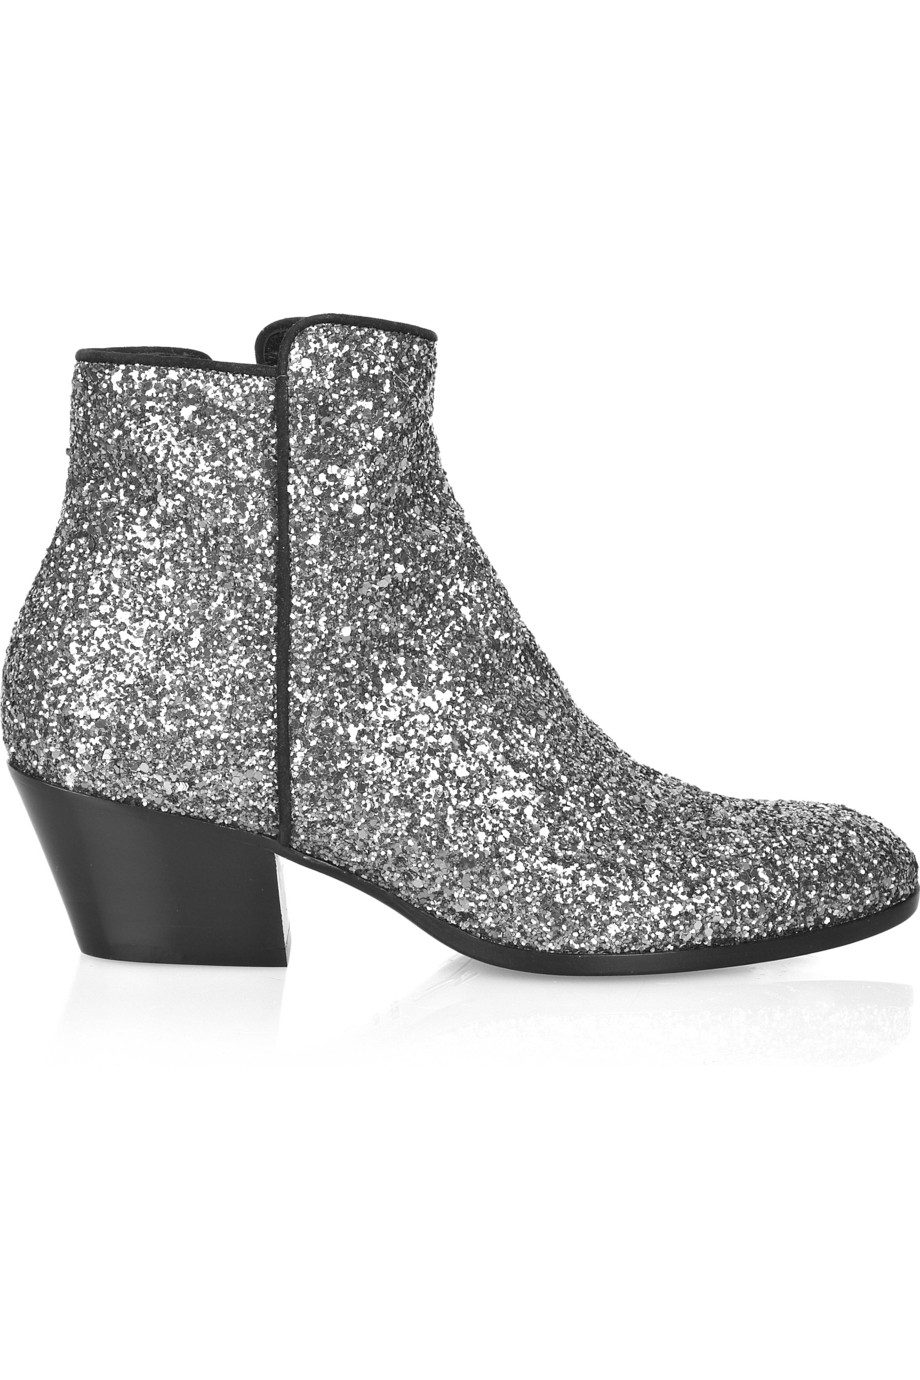 Giuseppe Zanotti Glitter Leather Ankle Boots In Silver